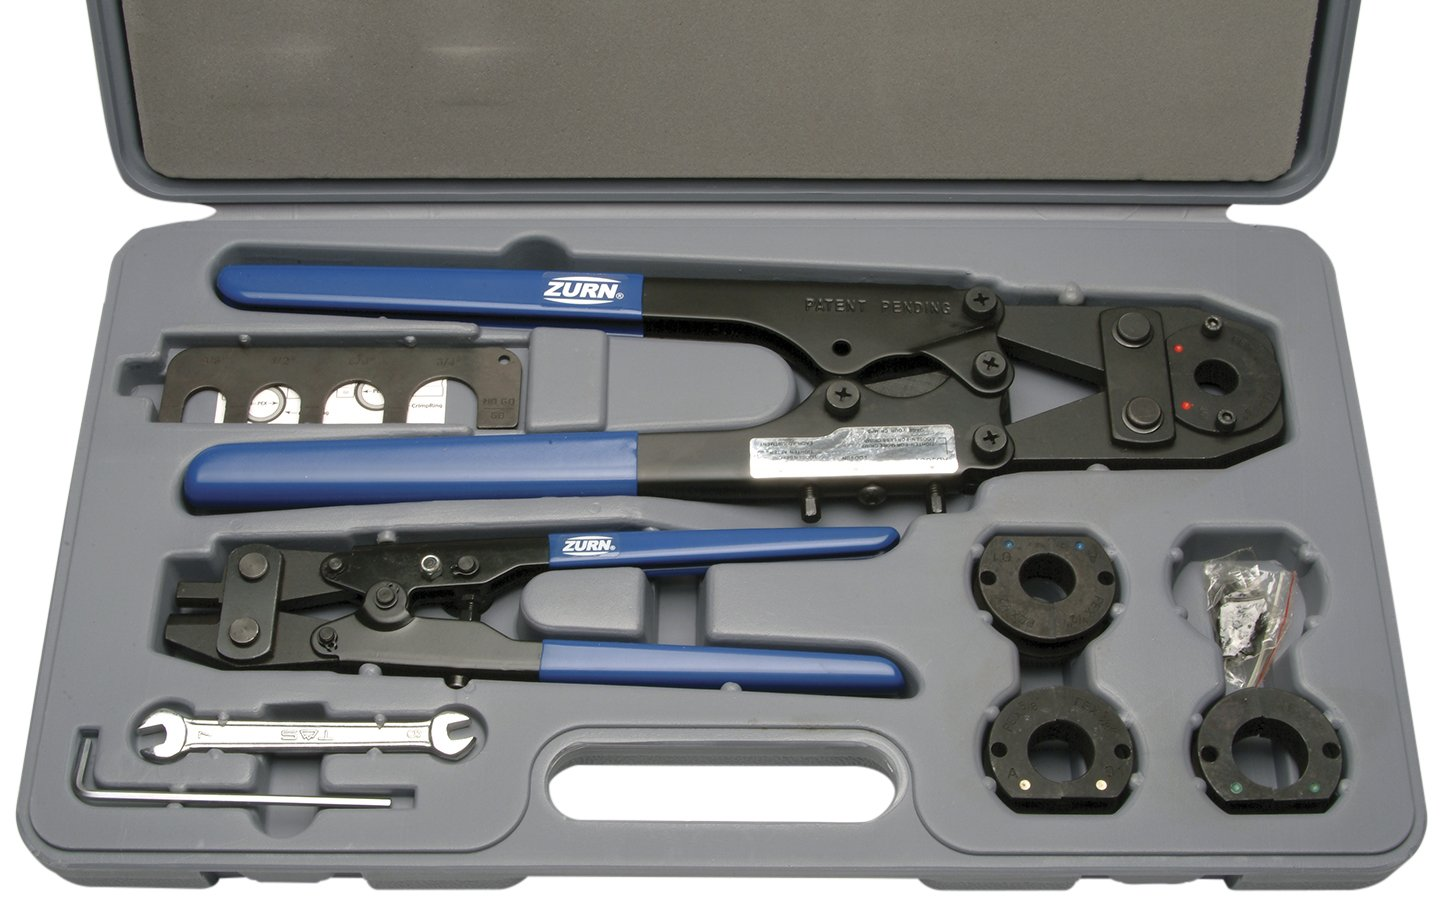 Zurn QCRTMH Steel Multi-Head Copper Crimp Tool for Creating Watertight PEX Connections of 3/8'', 1/2'', 5/8'' and 3/4'' PEX Fittings by Zurn